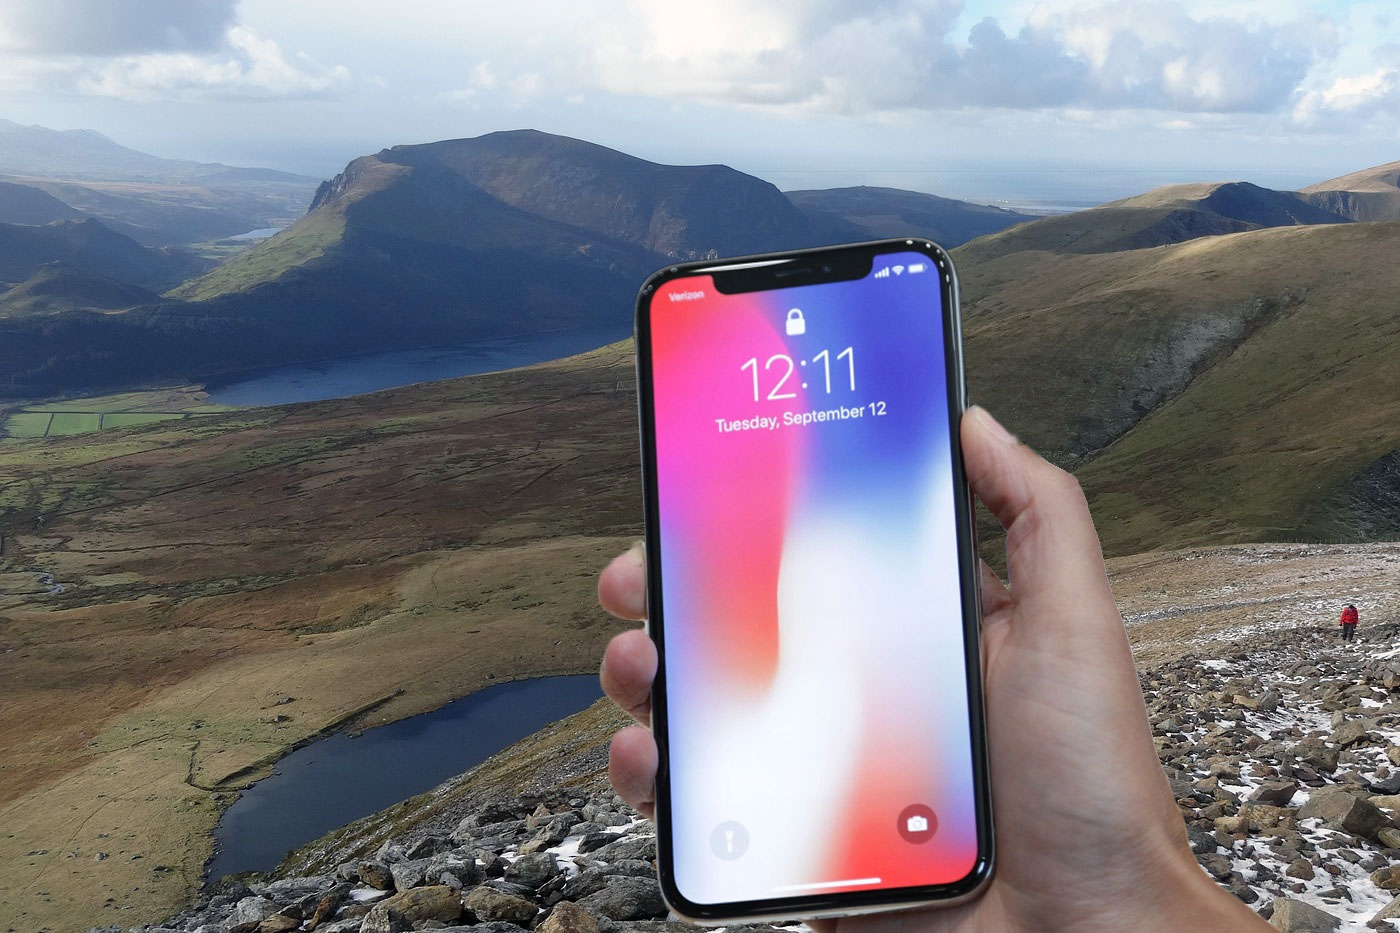 Welsh business telecoms provider welcomes iPhoneX – along with better mobile speeds for rural Wales